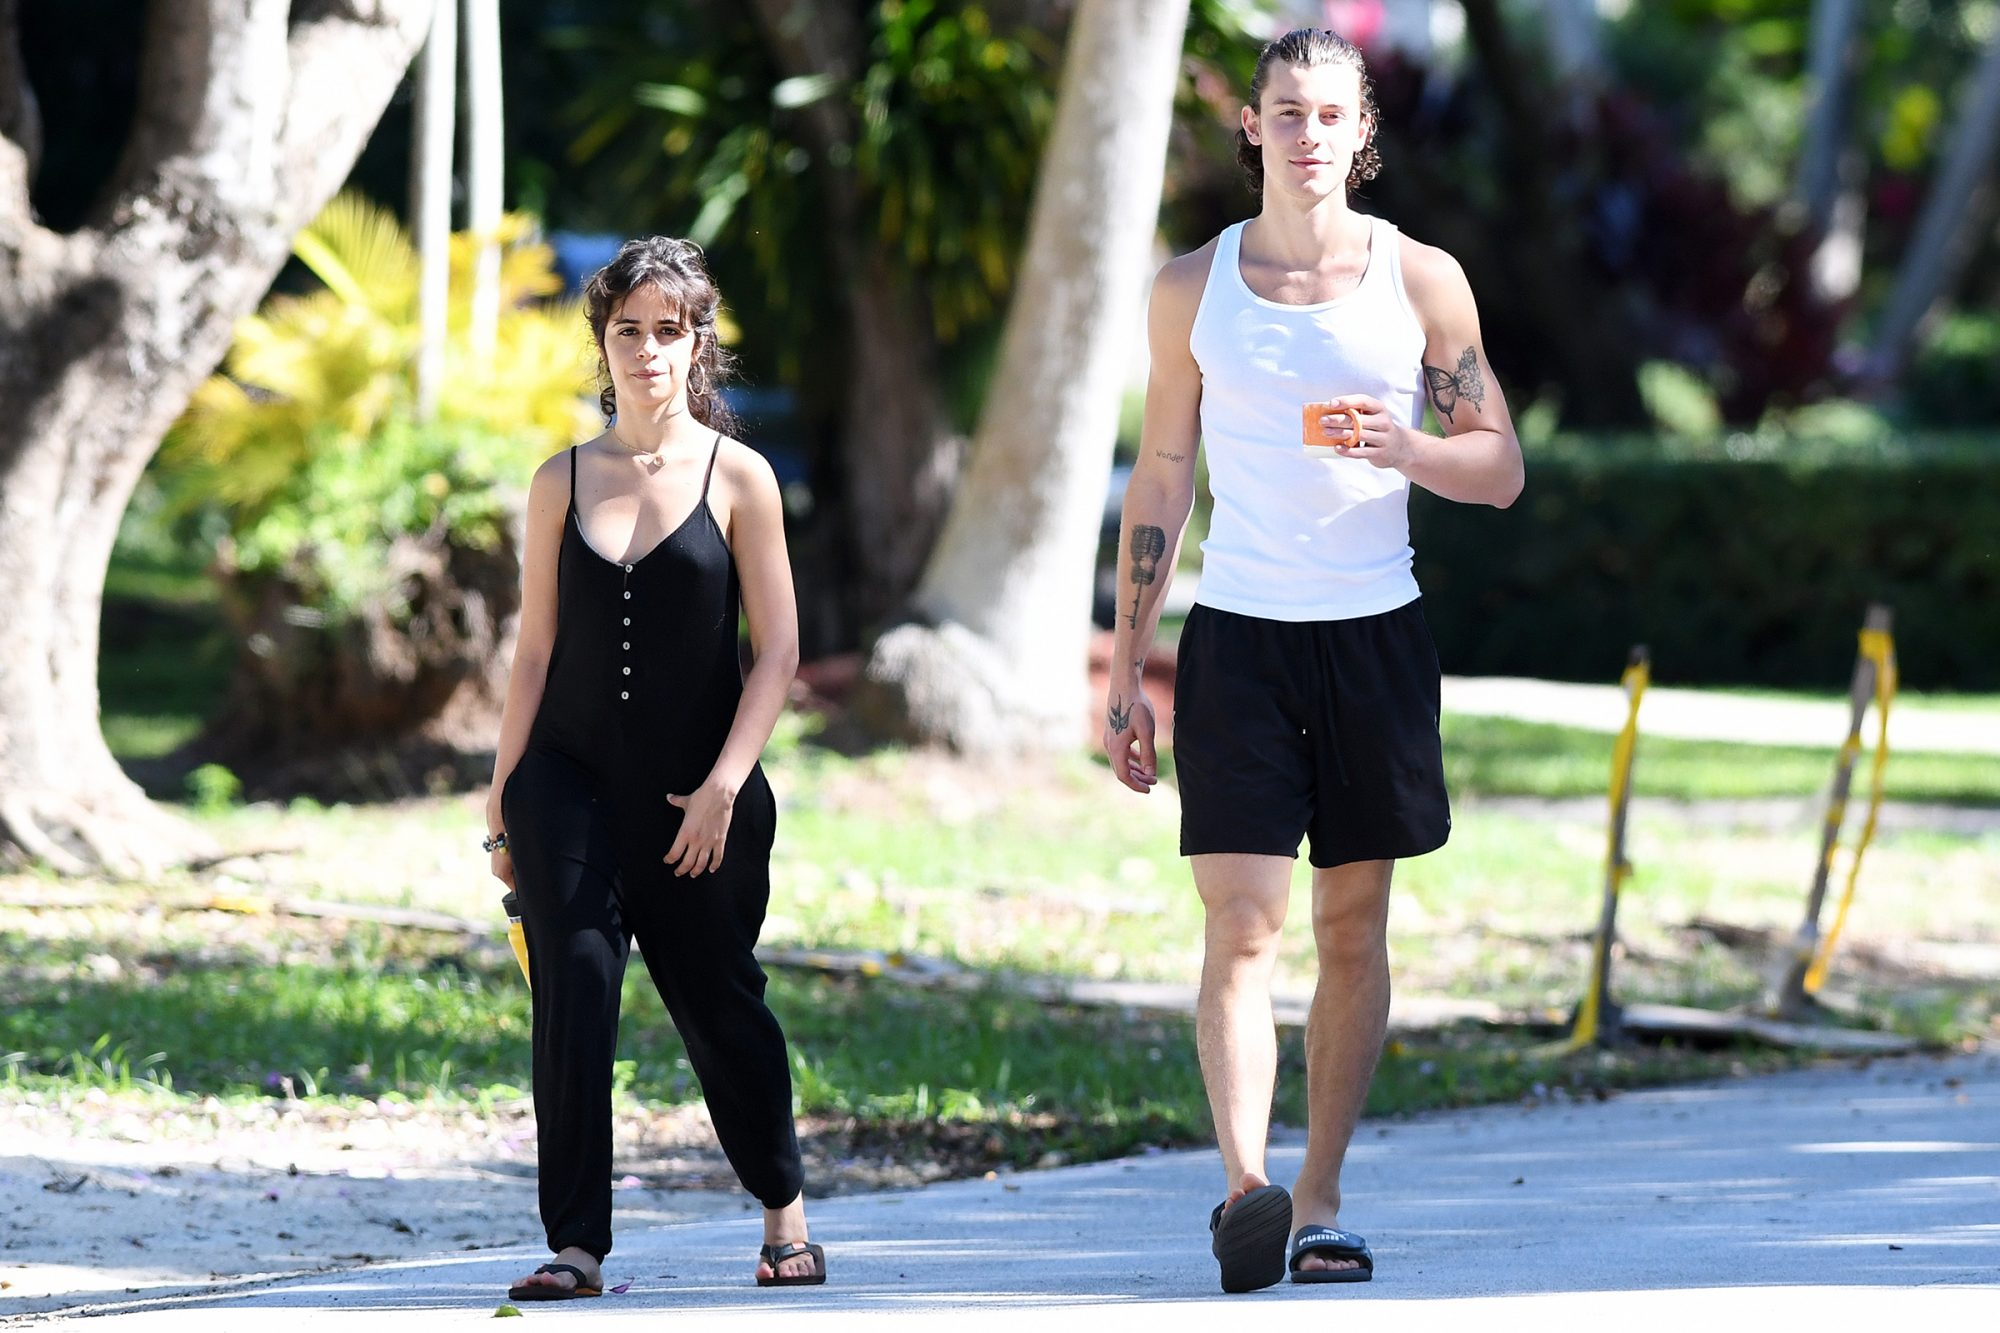 Shawn Mendes and Camila Cabello take a walk together on Sunday morning in Miami